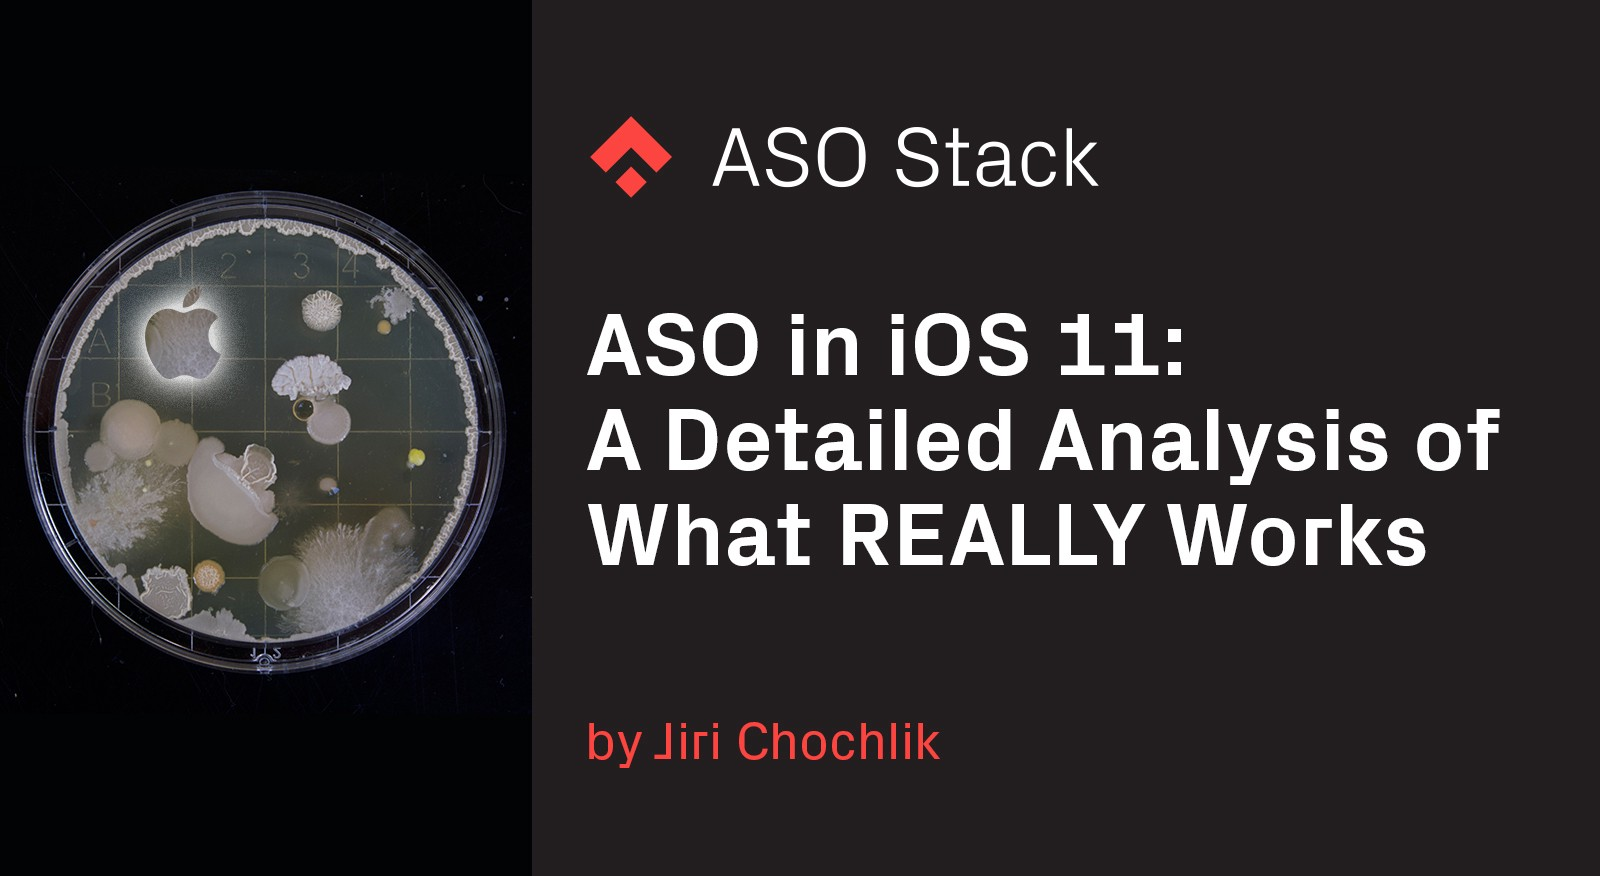 ASO in iOS 11: A Detailed Analysis of What REALLY Works